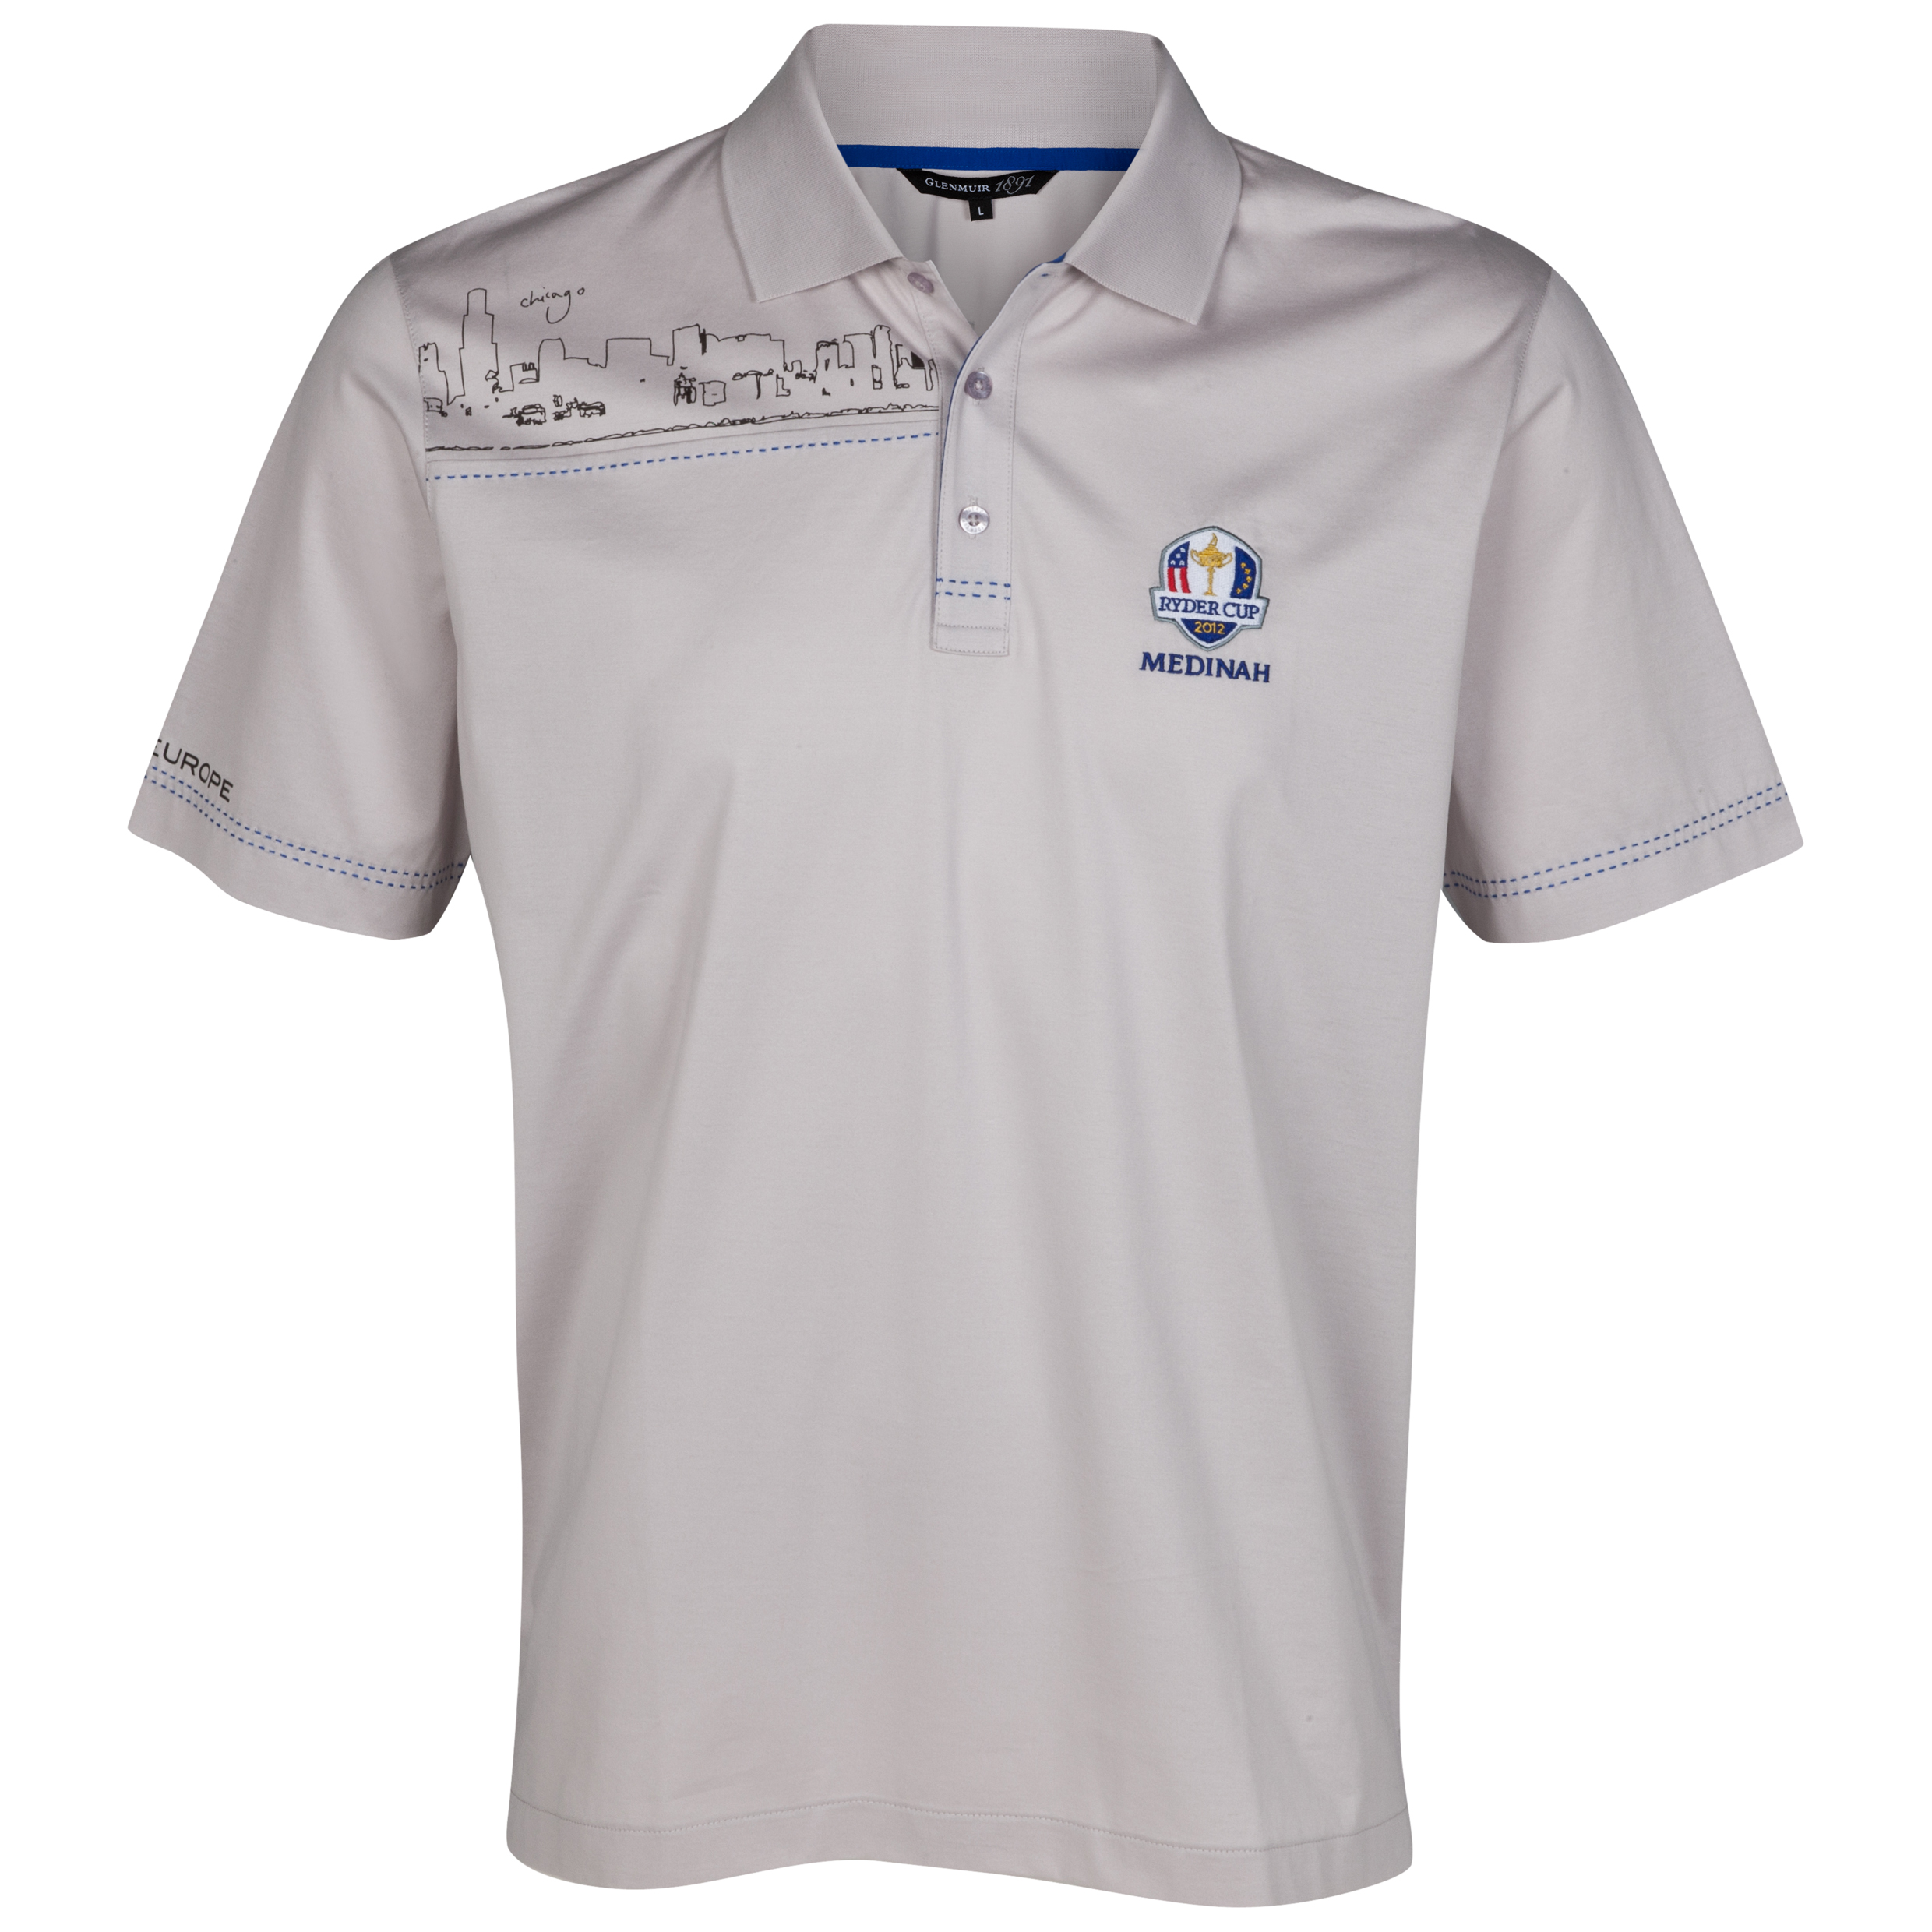 The 2012 Ryder Cup European Team Polo Shirt Practice Day 2 (Wednesday)